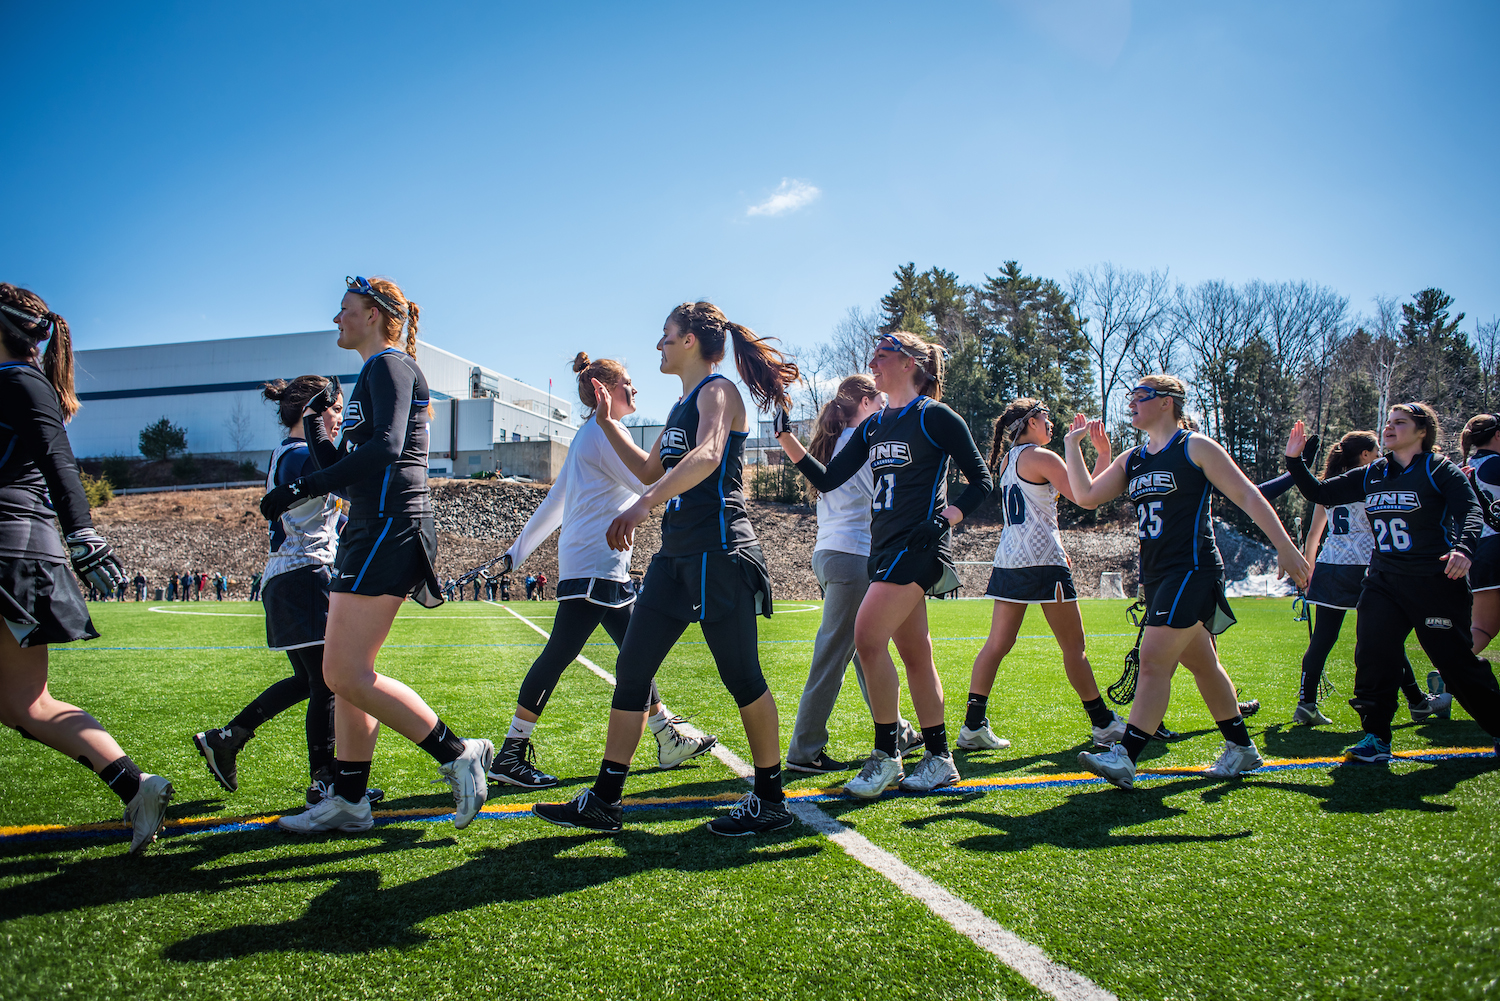 The USM and UNE women's lacrosse teams congratulate each other following a game at the USM lacrosse field in Gorham, Saturday, March 26, 2016.